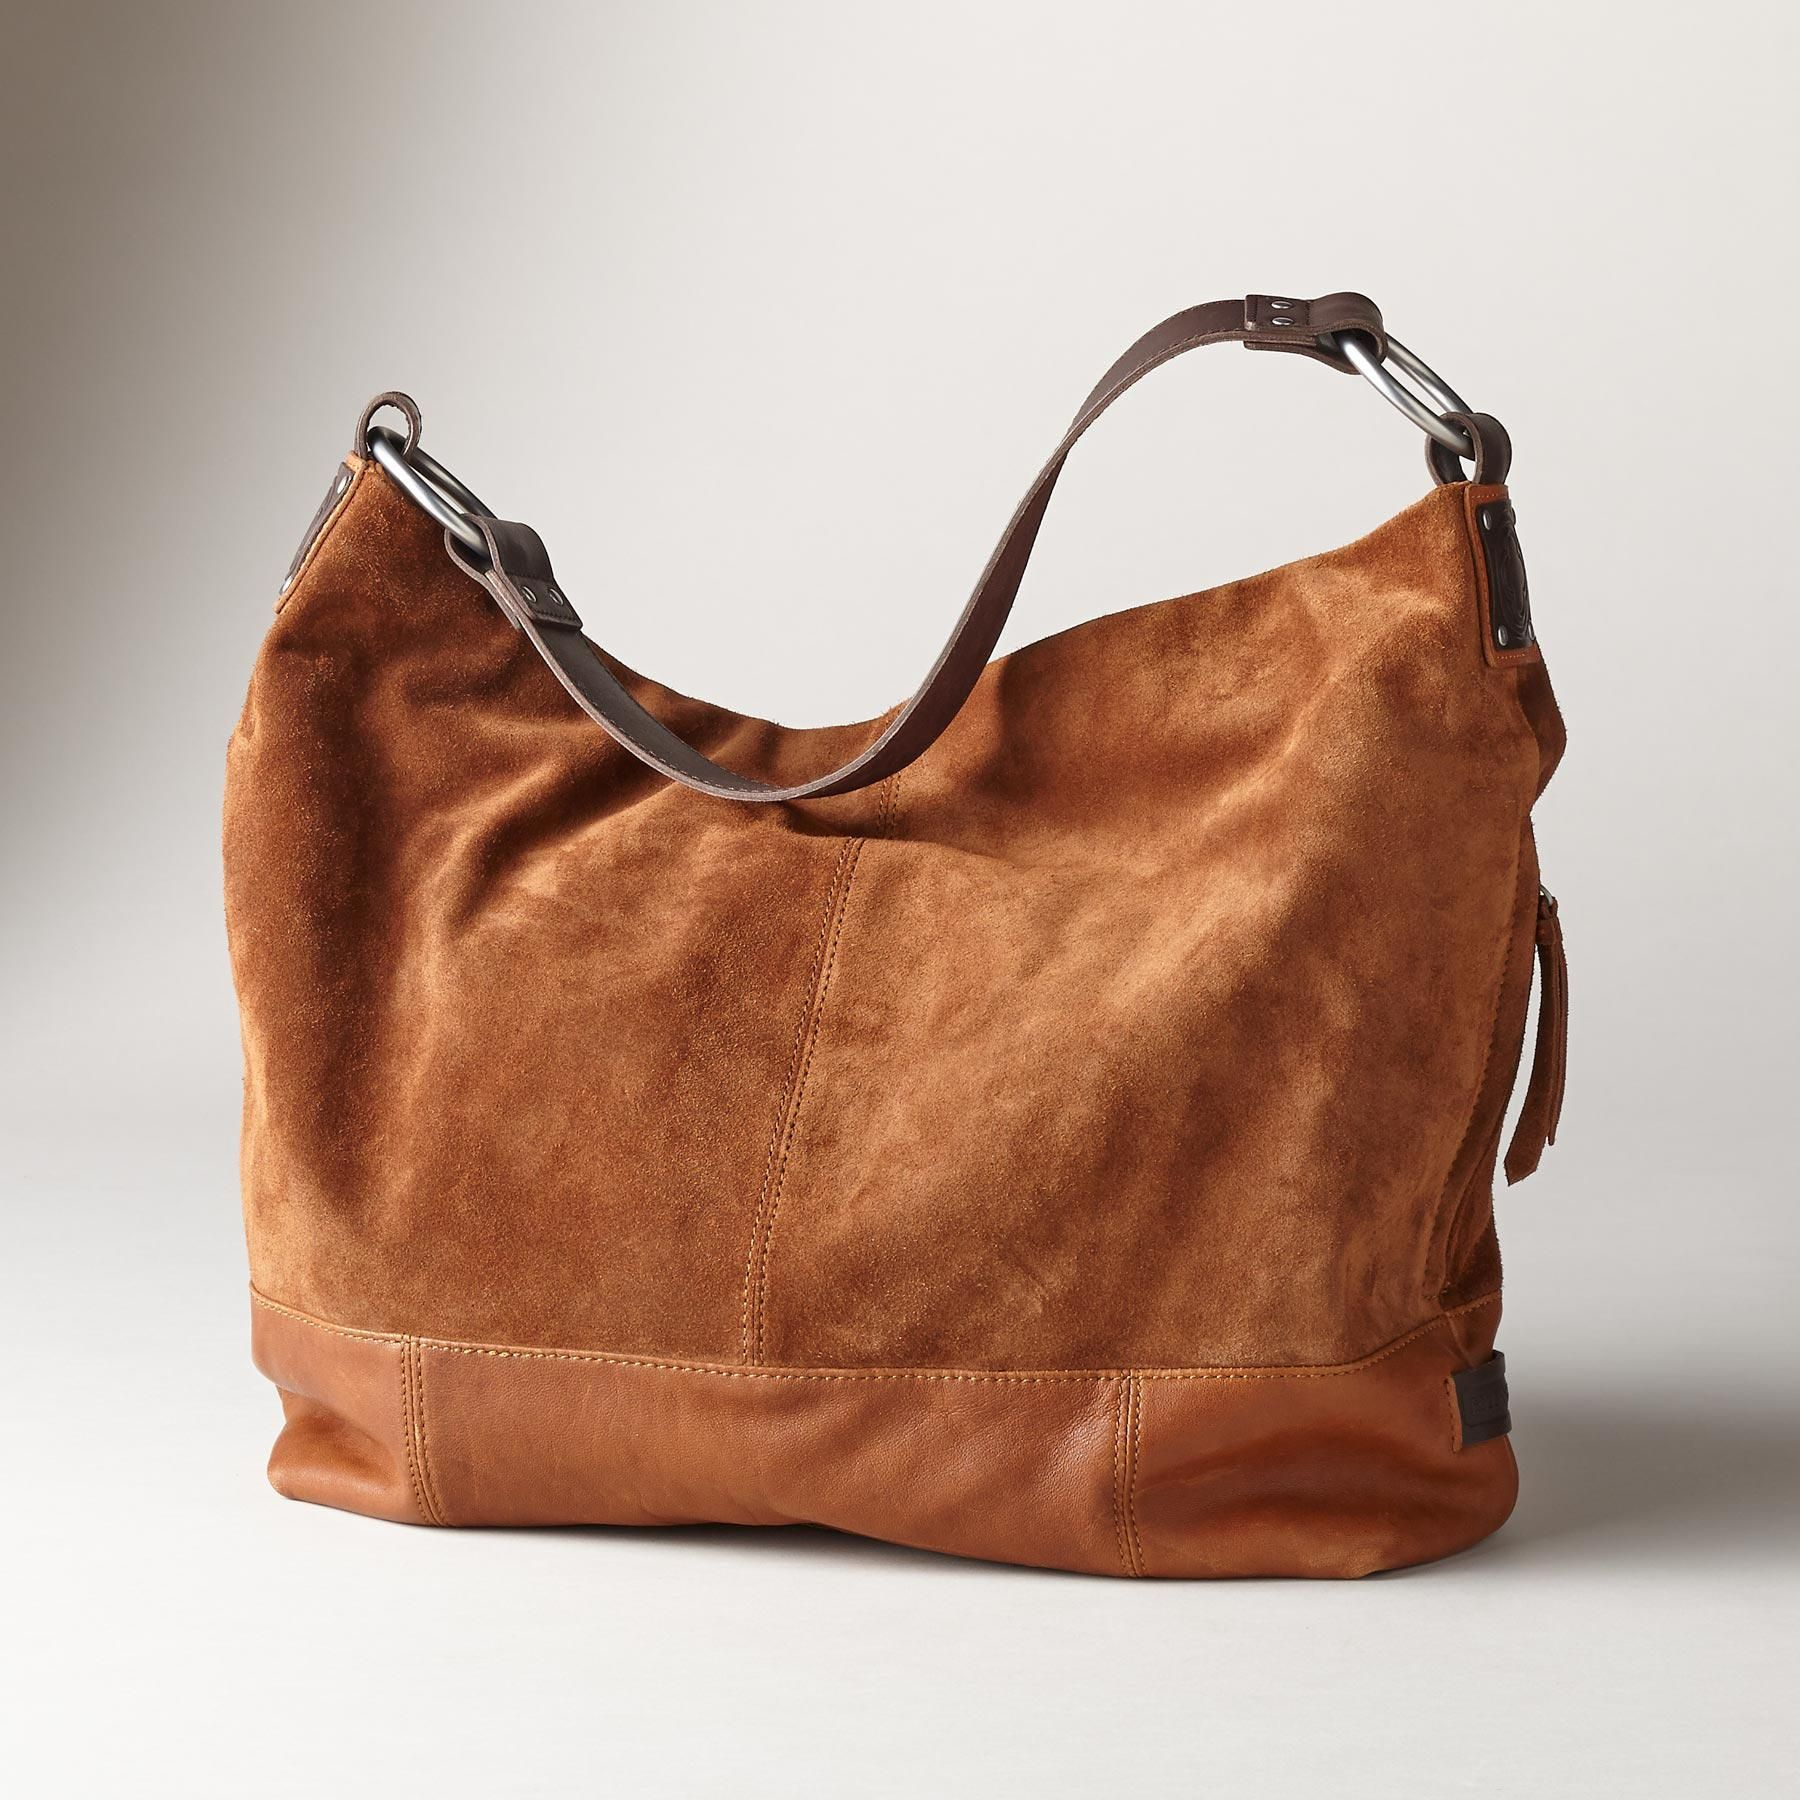 Sa Handbag Italian Suede And Glazed Leather Make Perfect Traveling Companions In This Elegant Bag Zip Closure One Outer Pocket Four Inner